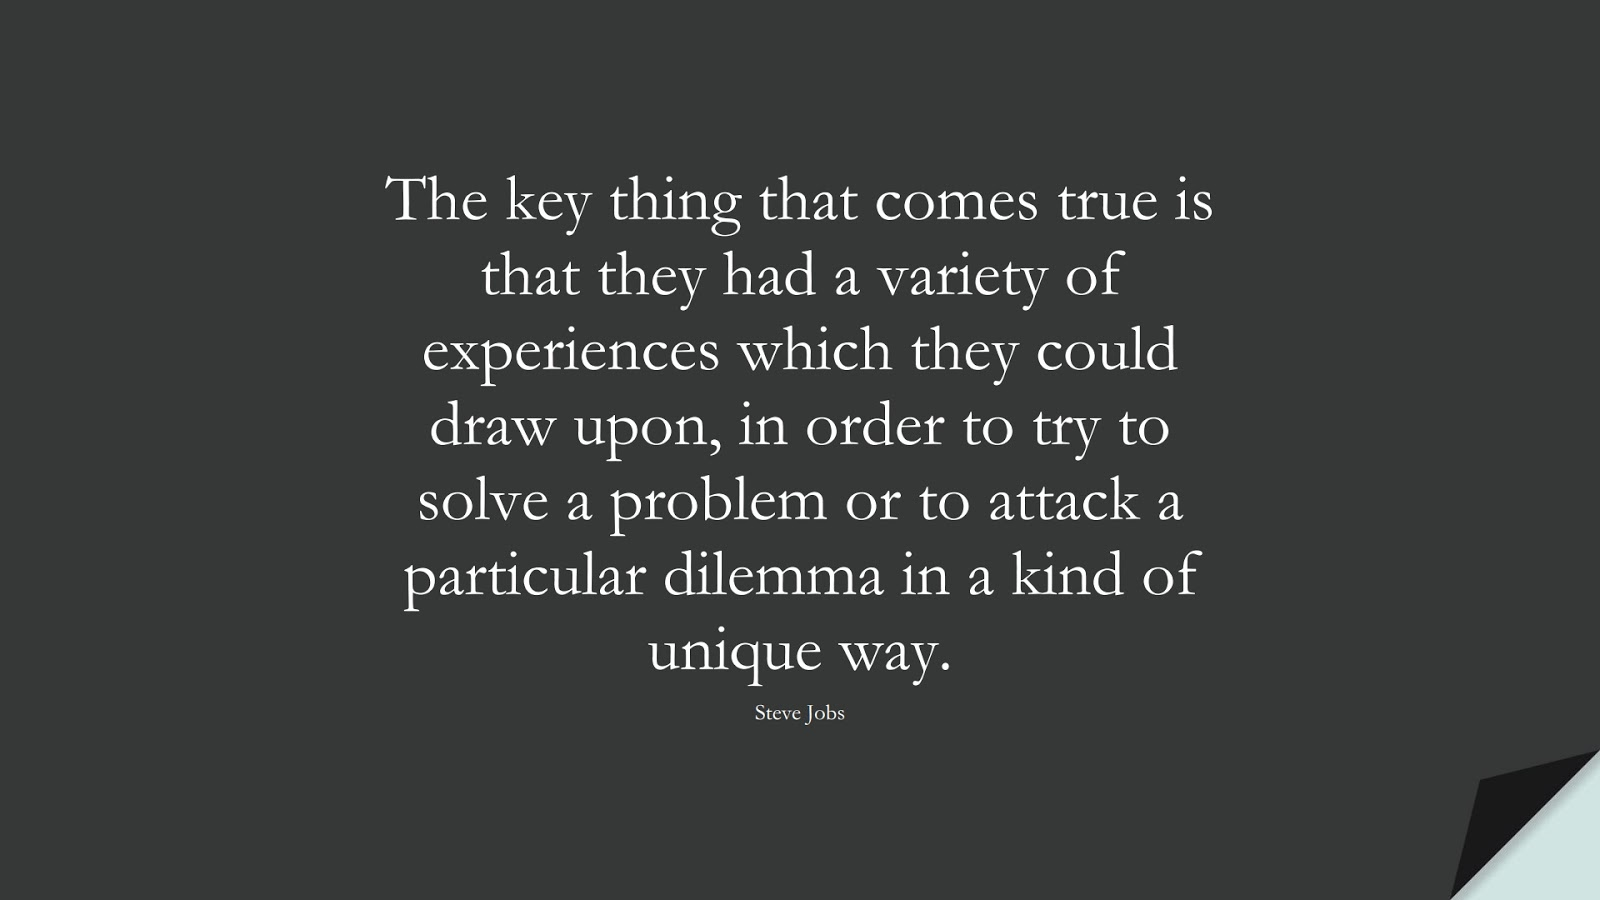 The key thing that comes true is that they had a variety of experiences which they could draw upon, in order to try to solve a problem or to attack a particular dilemma in a kind of unique way. (Steve Jobs);  #SteveJobsQuotes